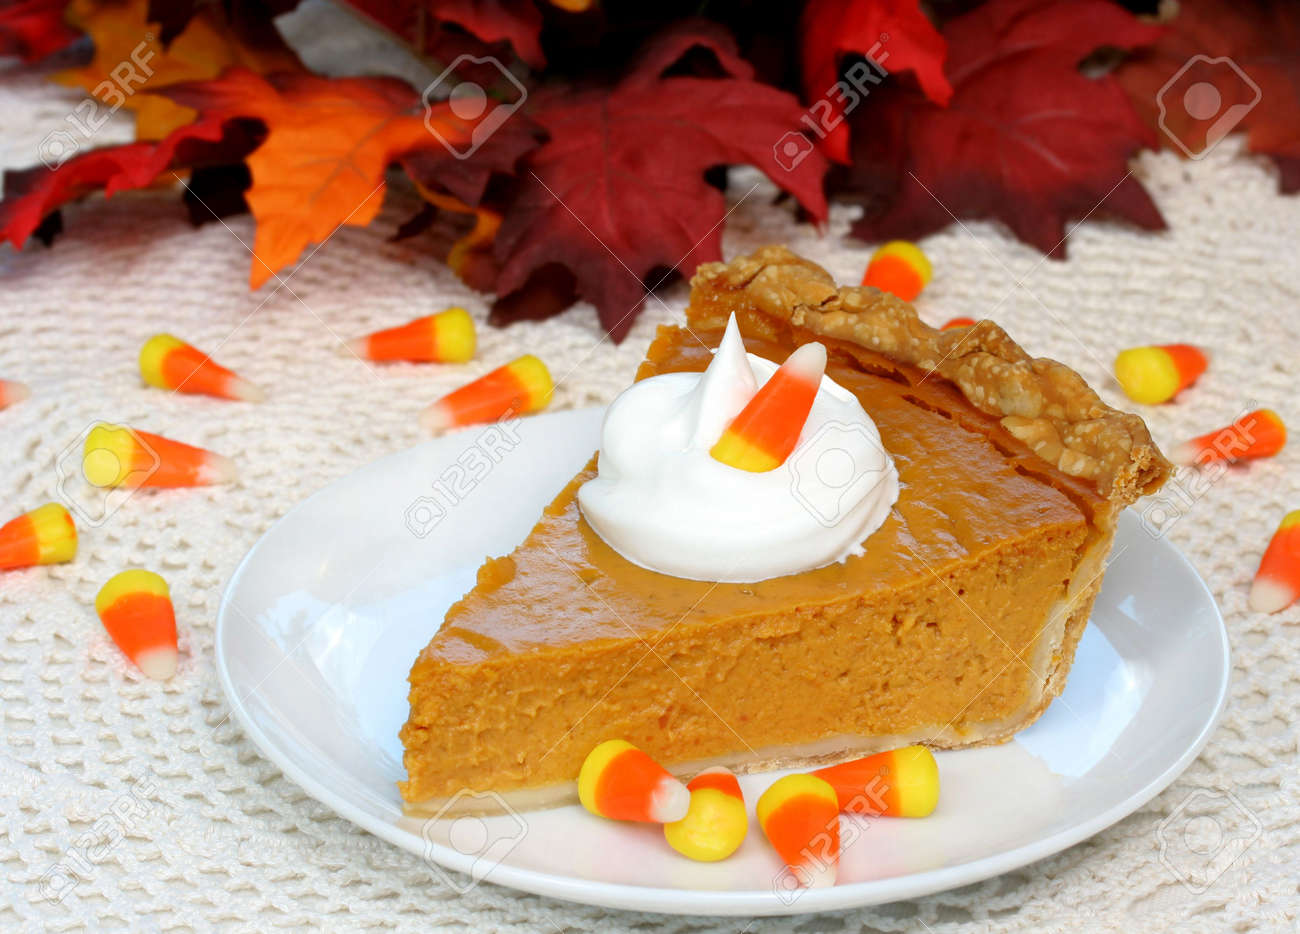 One slice of Pumpkin Pie with Candy Corn and Fall Leaves Stock Photo - 3447799